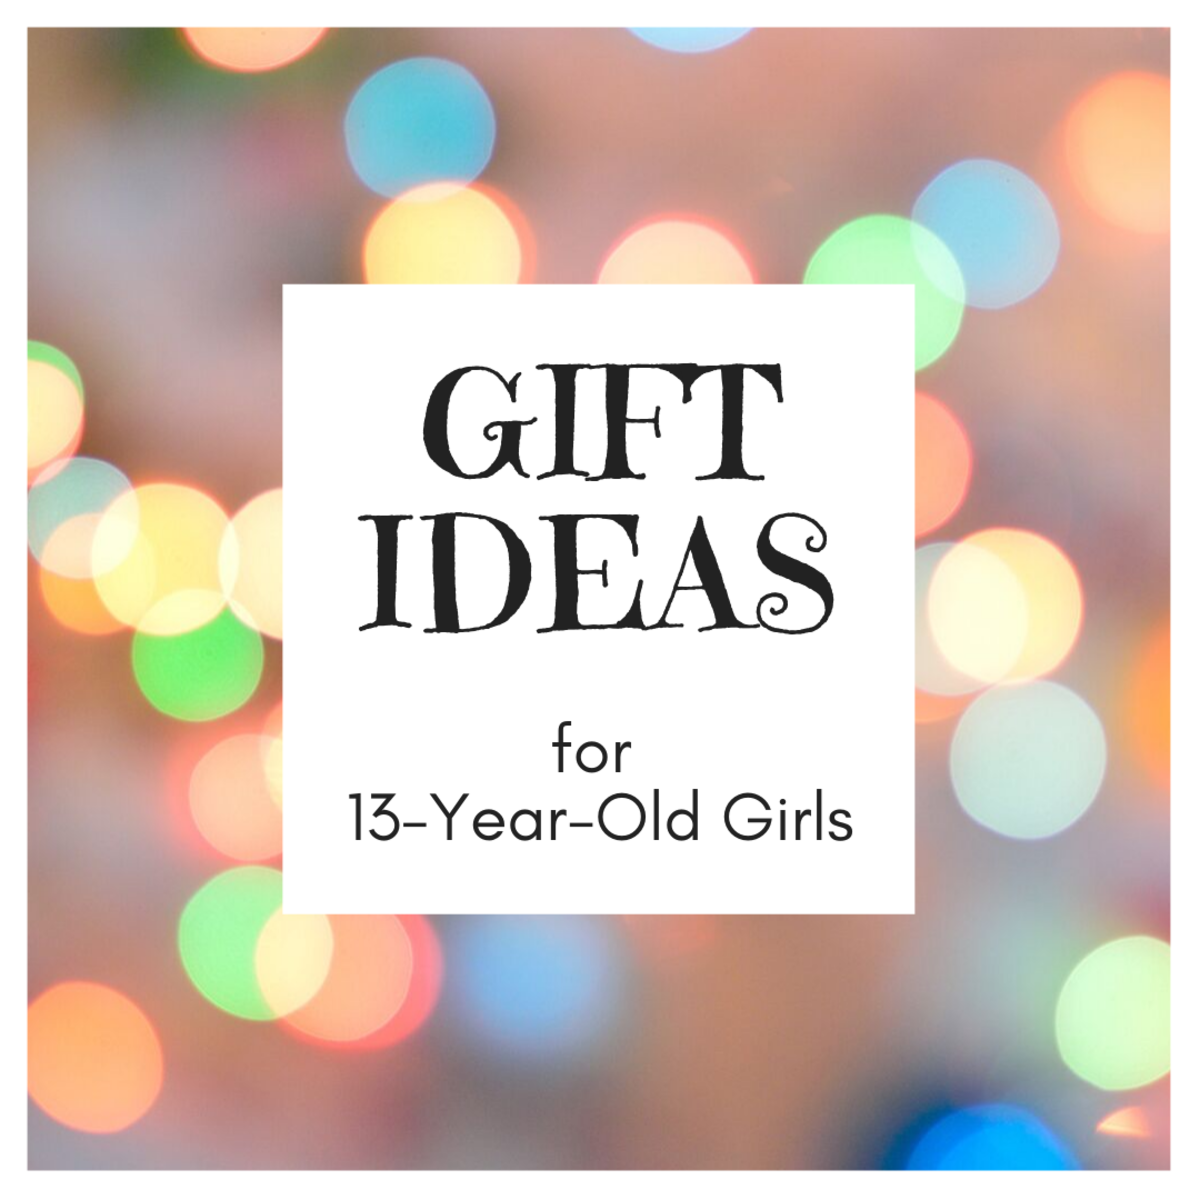 Best Gift Ideas for 13-Year-Old Girls